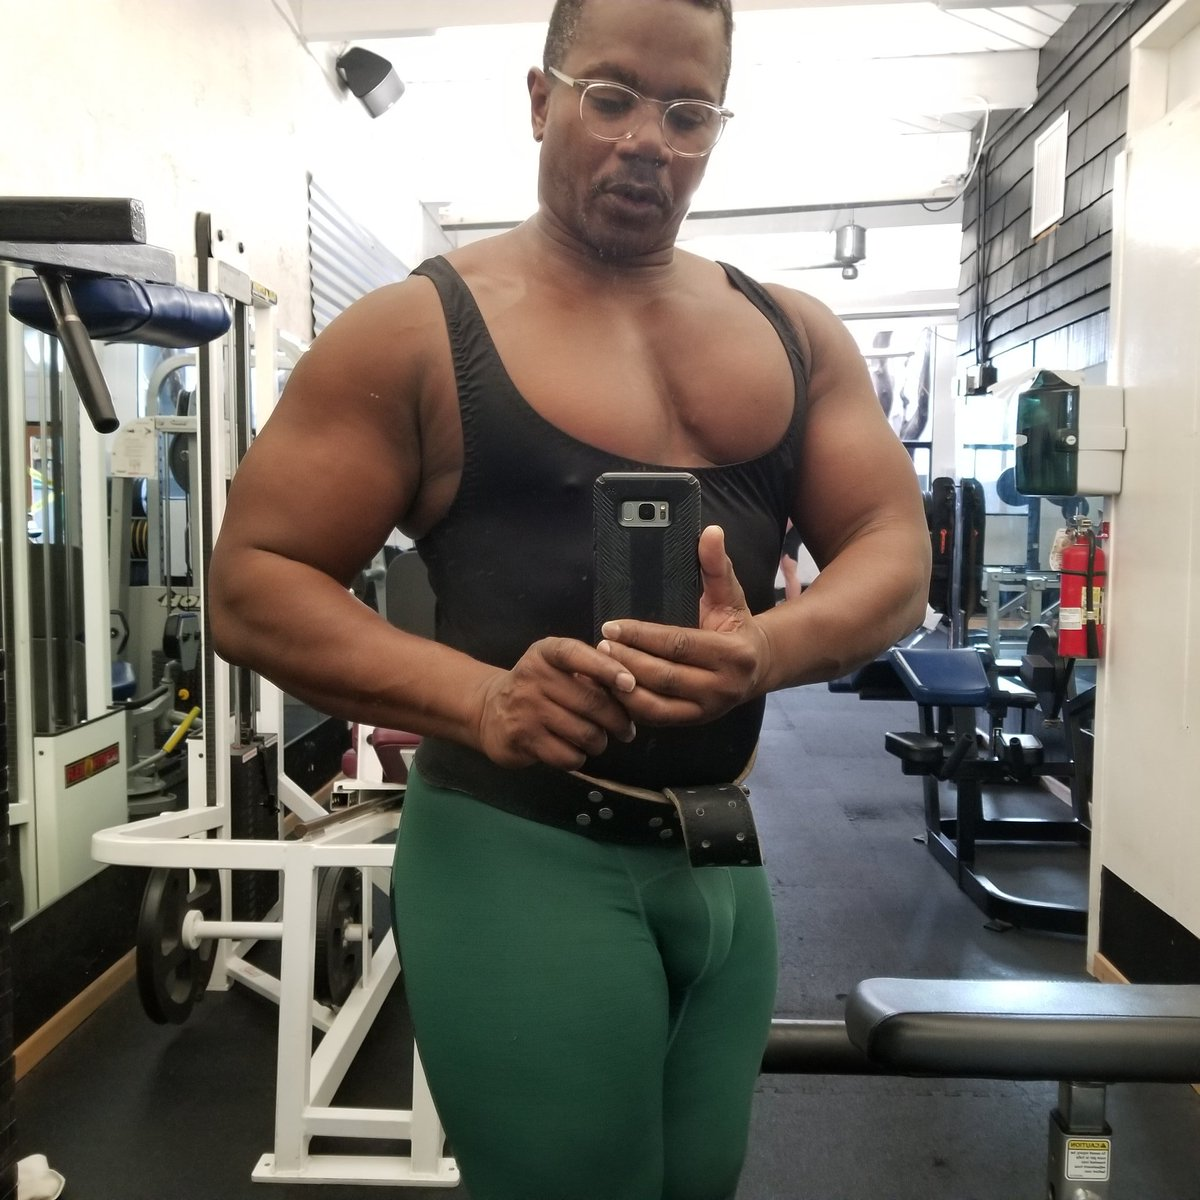 I can't wait to get back in the gym and get massive. I'm still eating to keep size. Nit sure what I weigh but then is the fun part of bulking.  #muscle #Bodybuilder #gear #spandex #tights #gymrat #bodybuilding #musclegrowth #bulking #Bodybuilder #masspic.twitter.com/8p9WaBYKJb